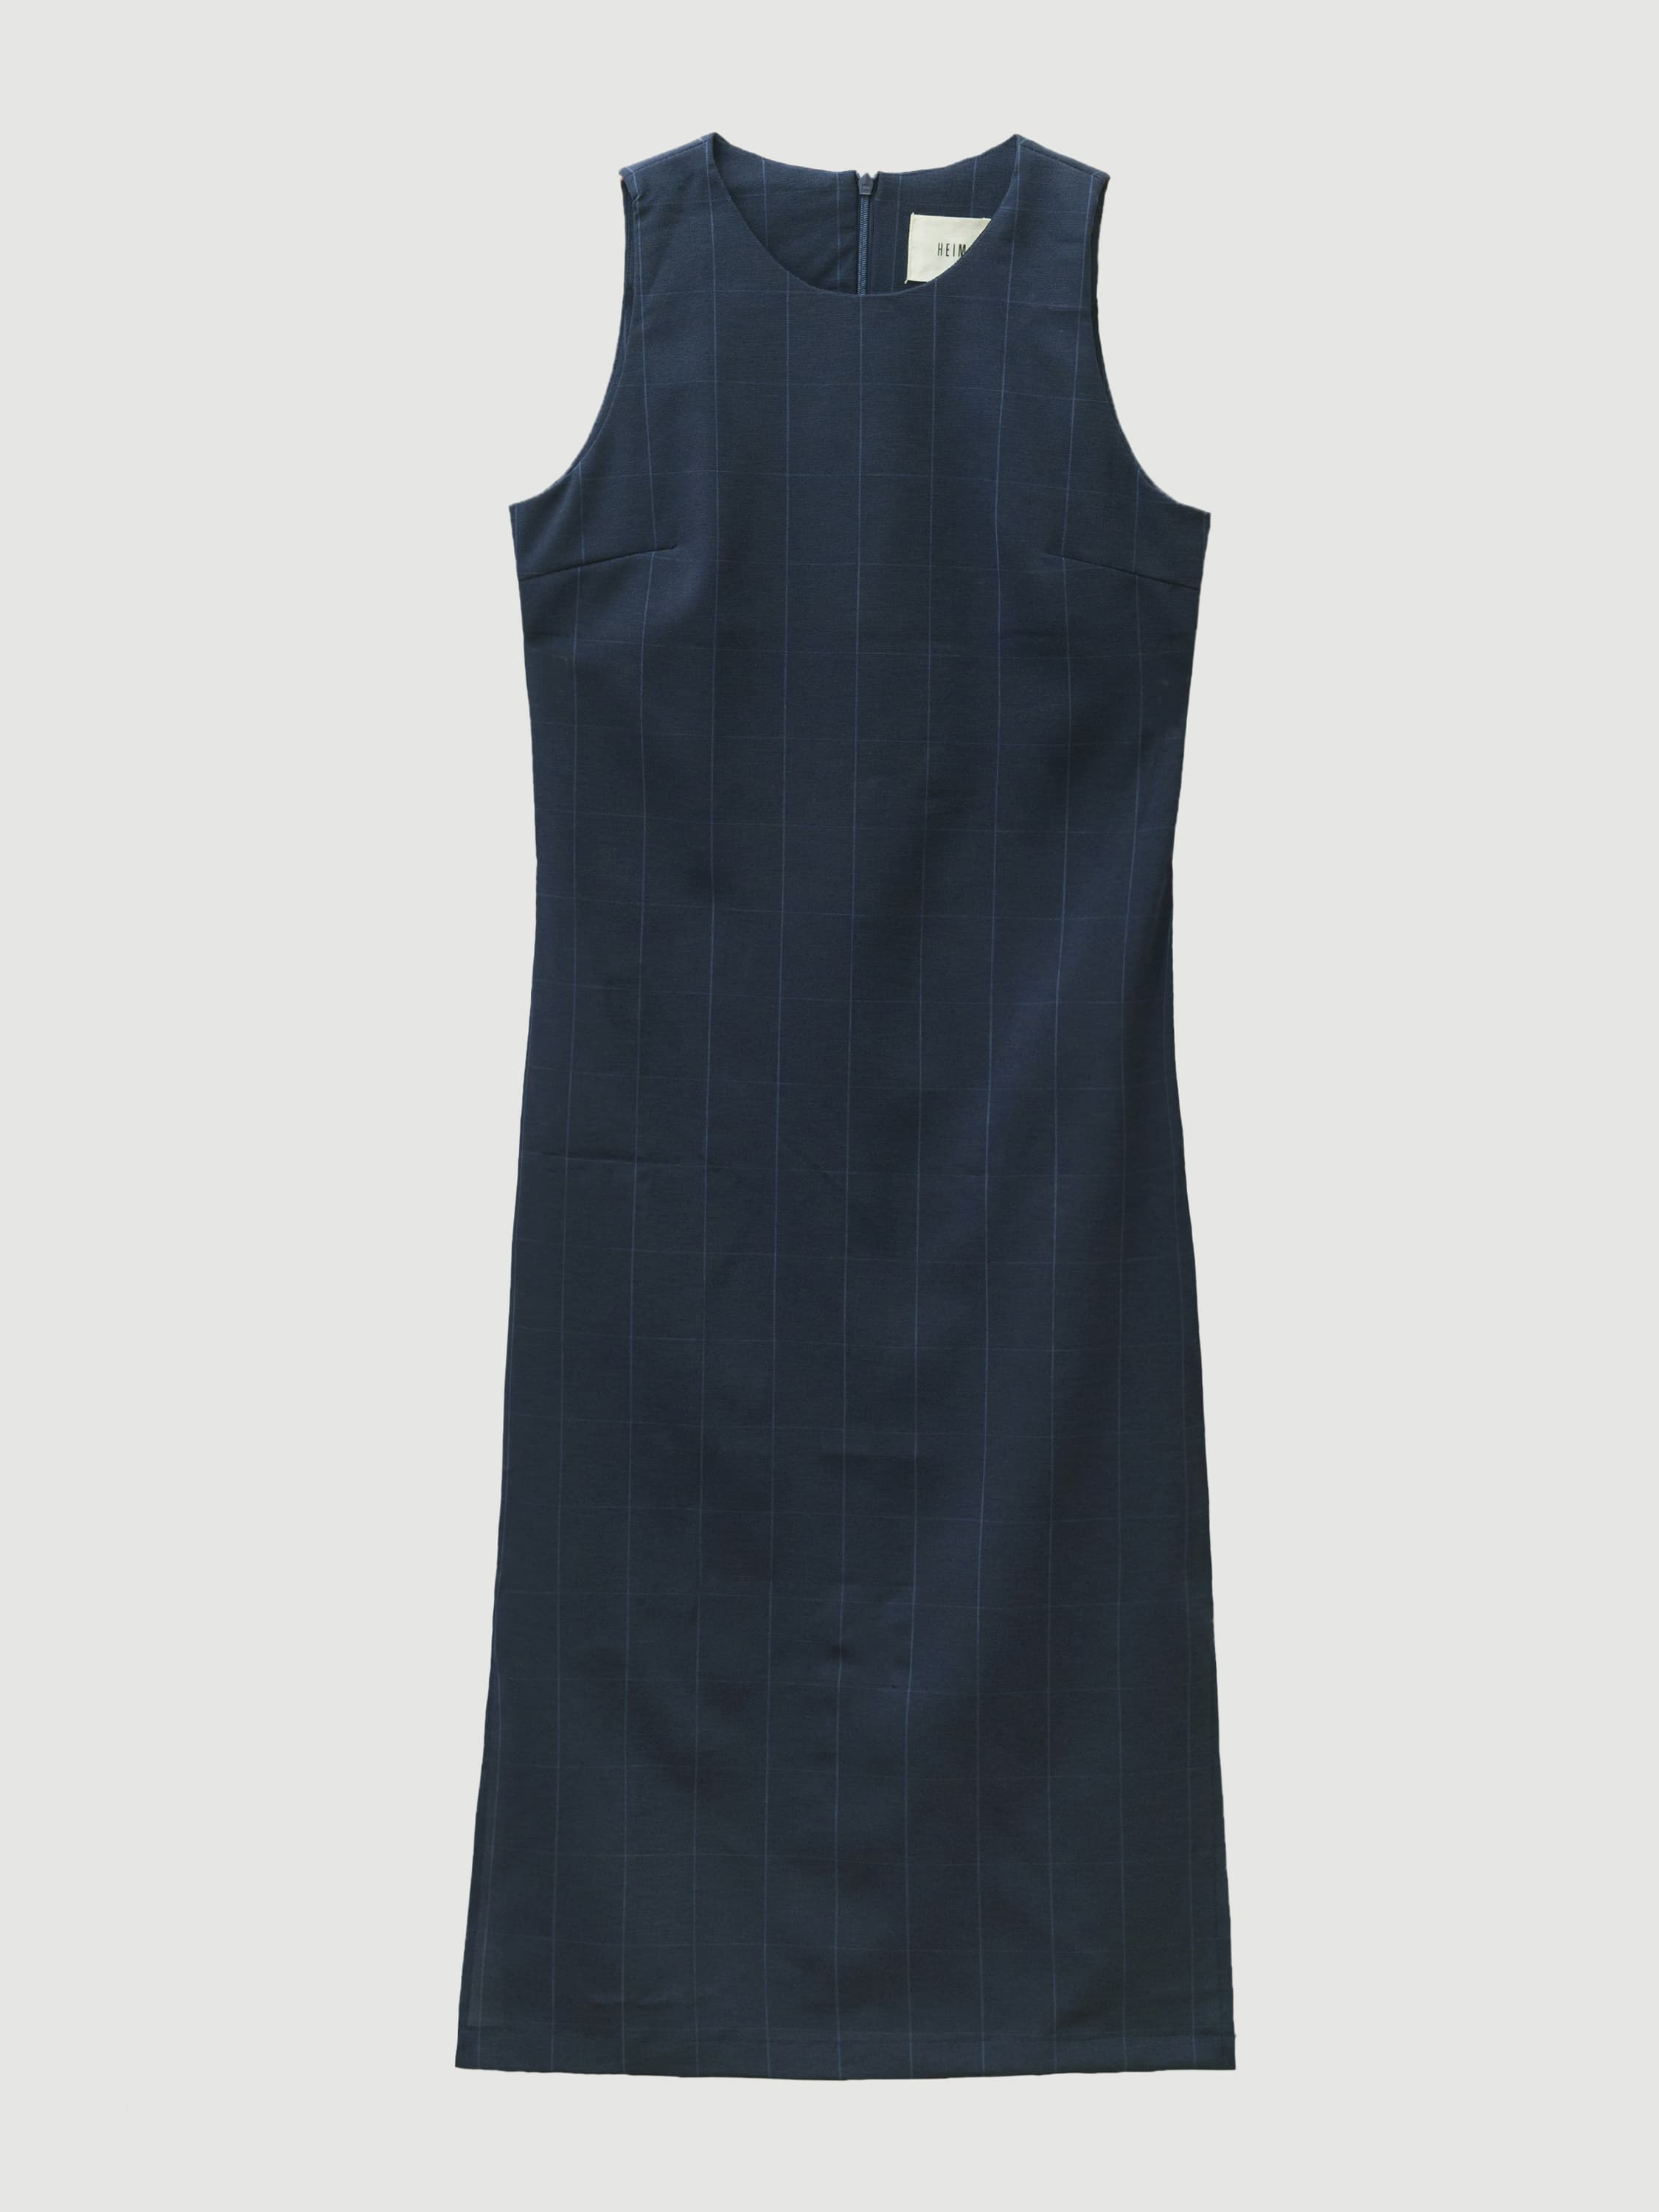 Minimal Navy Square Dress